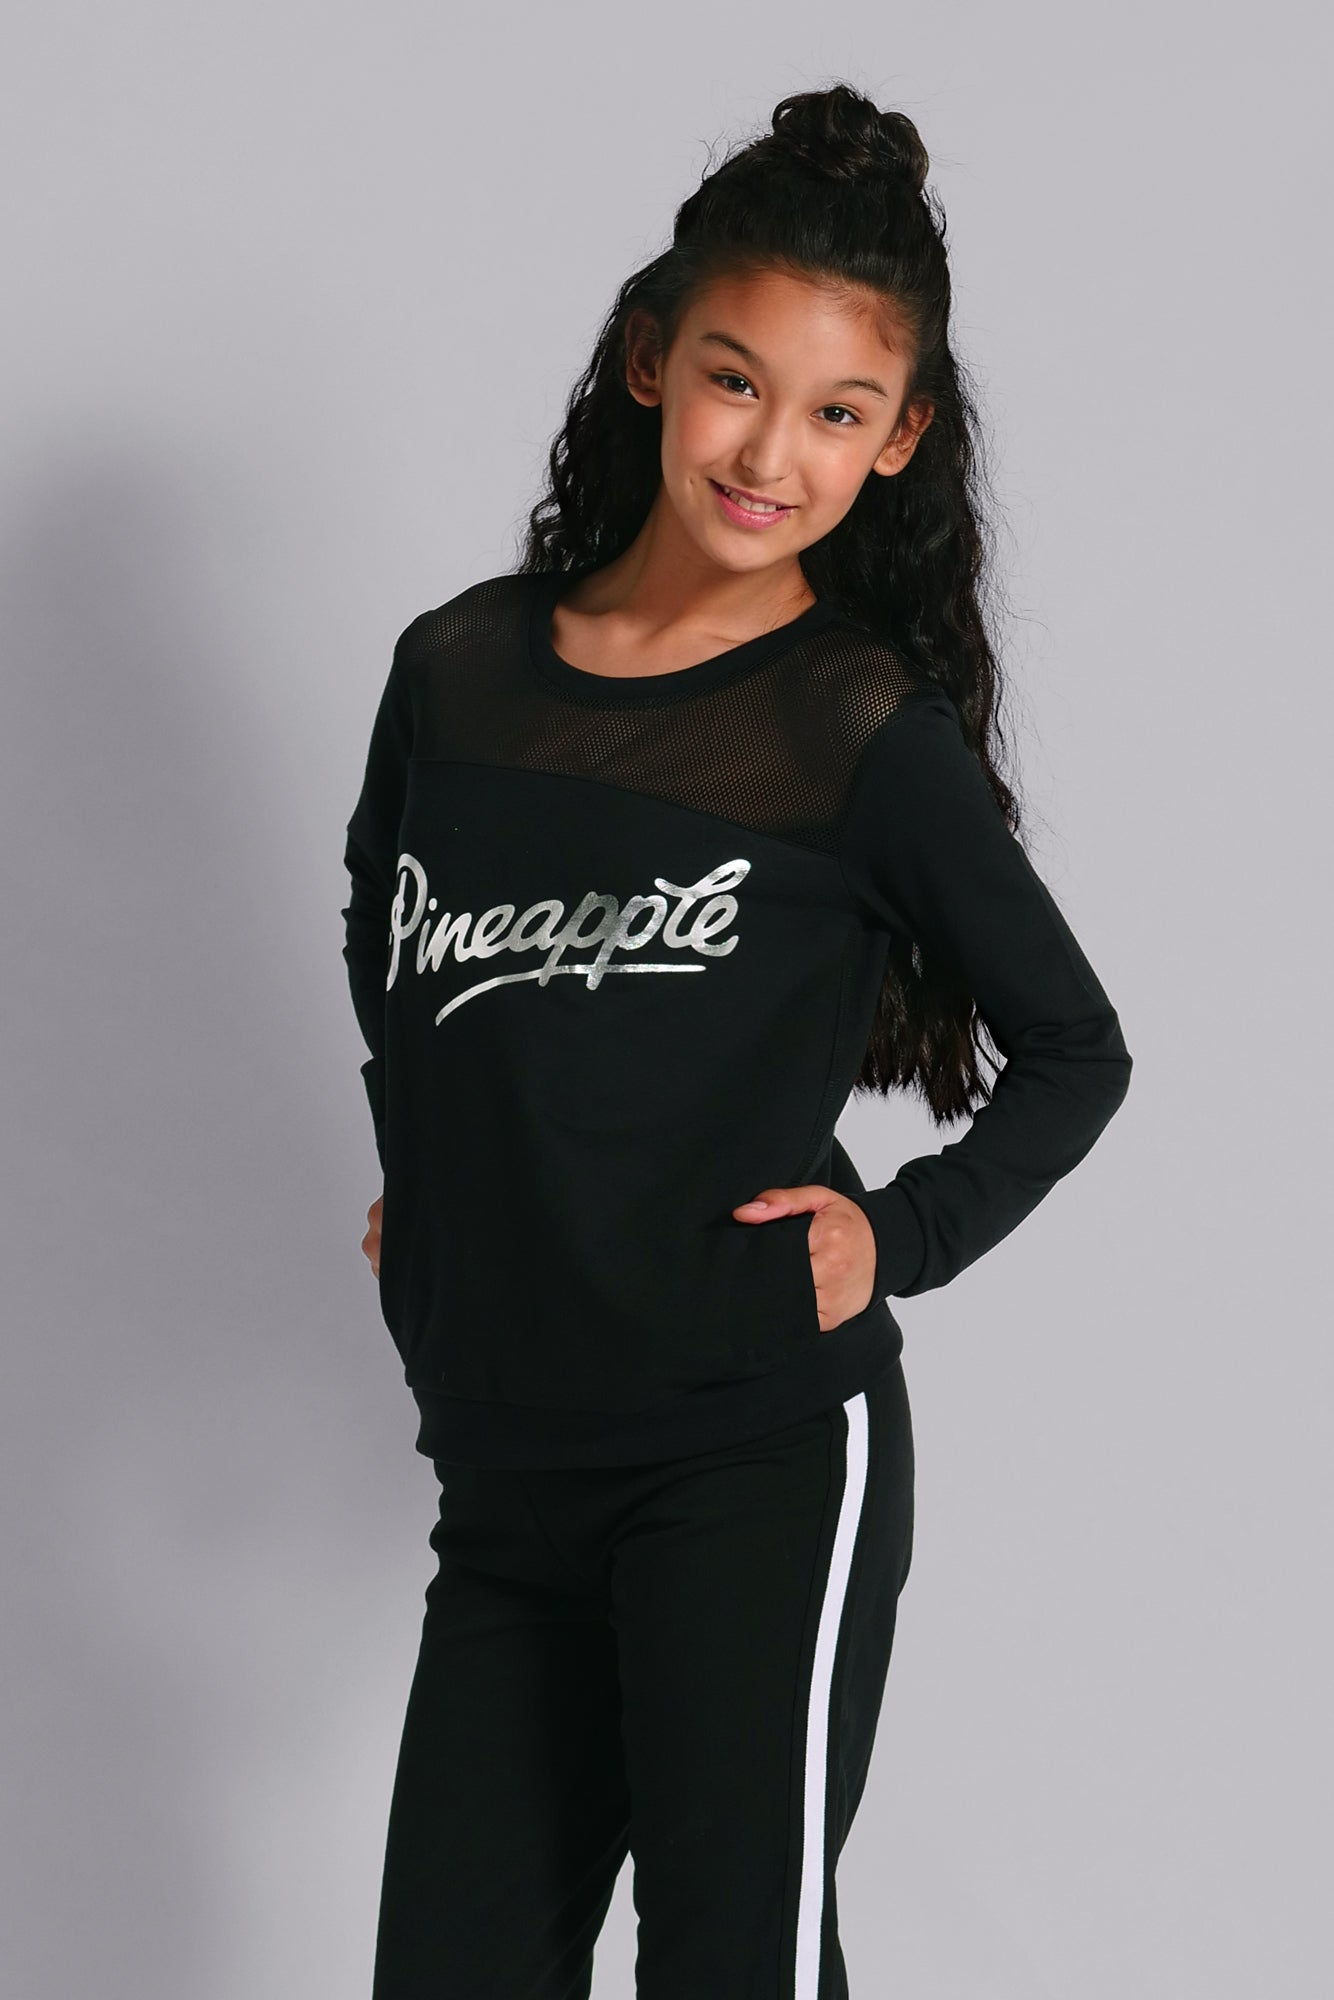 Pineapple Dancewear Girls' Black Mesh Monster Sweater